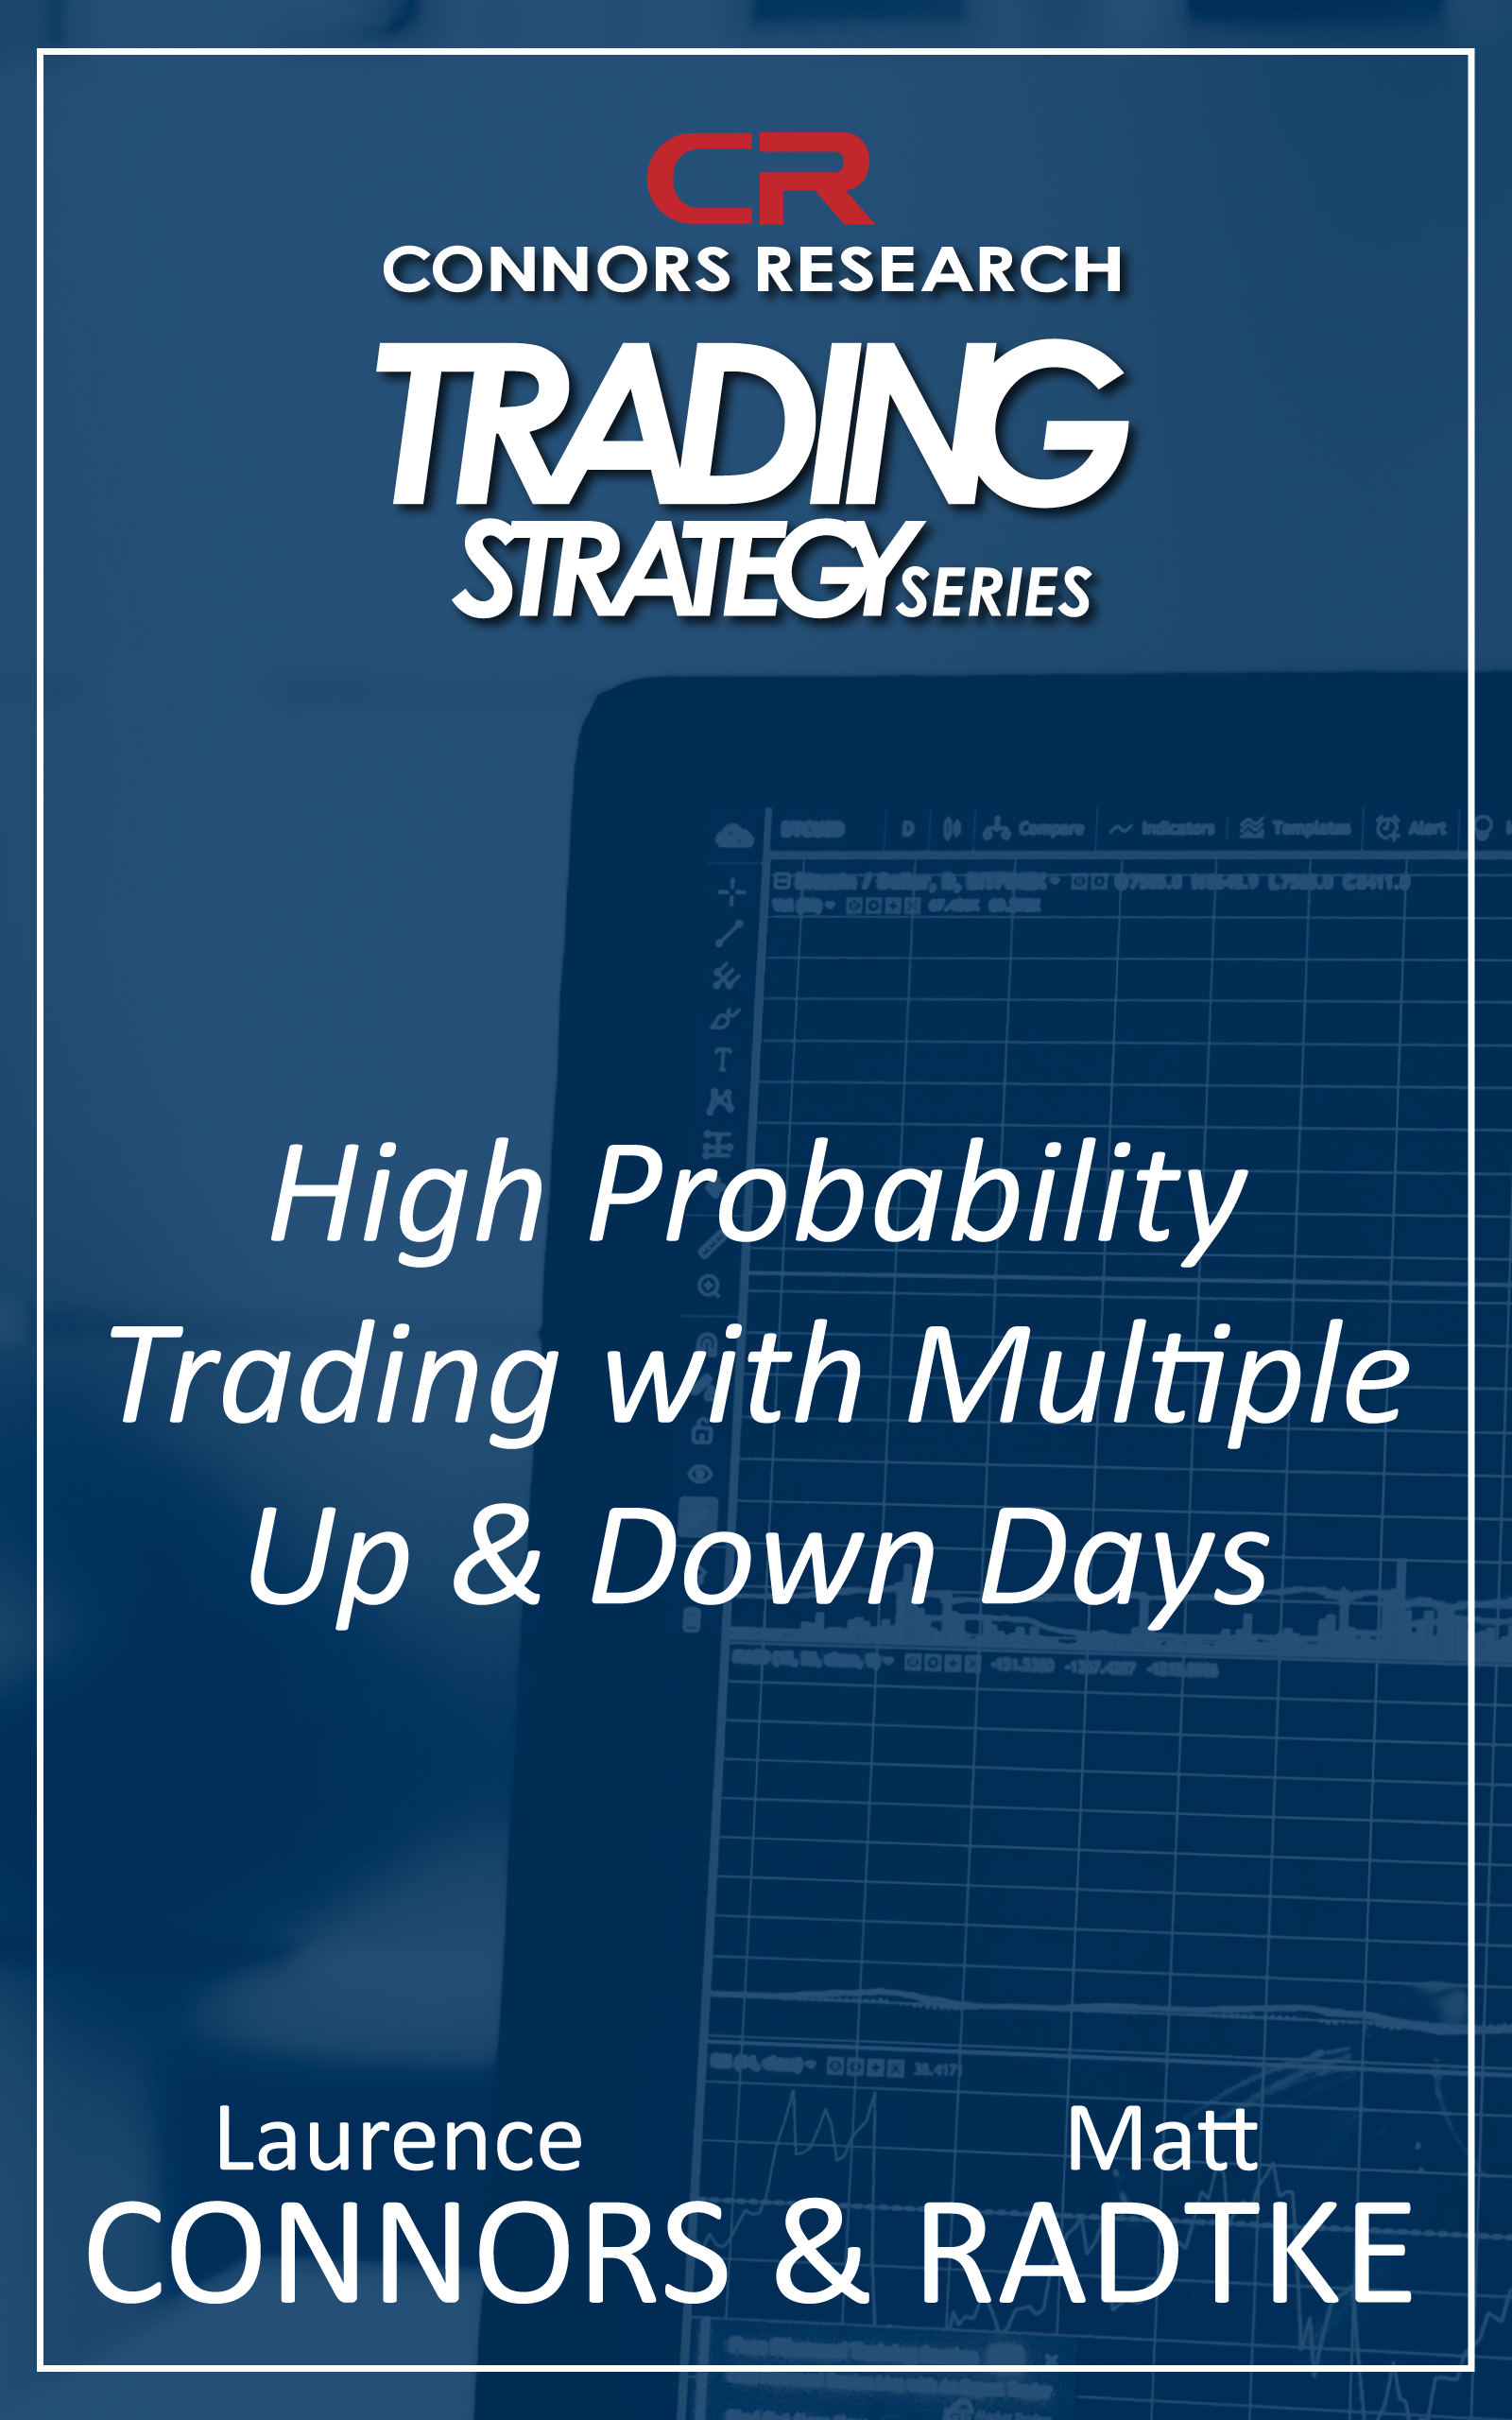 Connors Research Trading Strategy Series: High Probability Trading With Multiple Up and Down Days Strategy BOO-CRMD-D